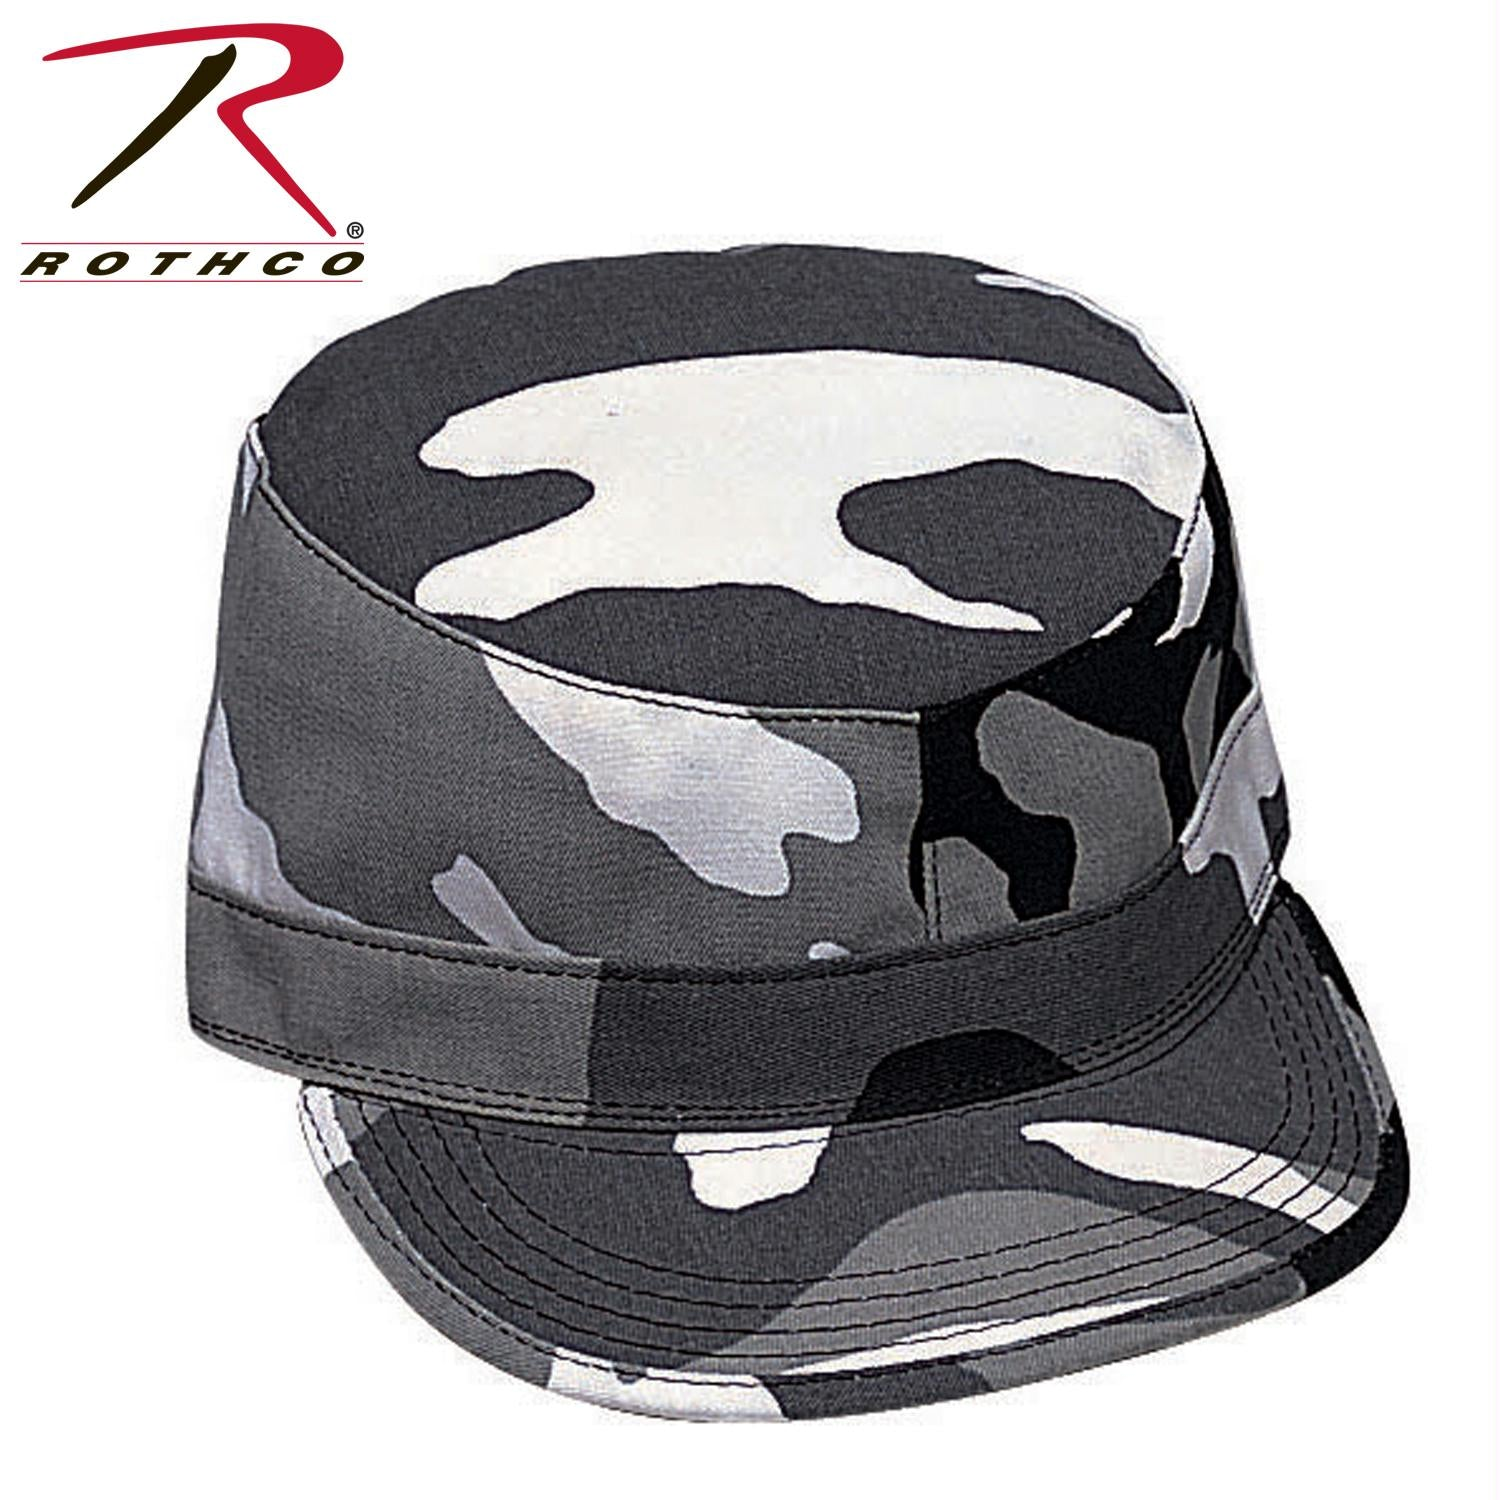 Rothco Camo Fatigue Caps - City Camo / 2XL